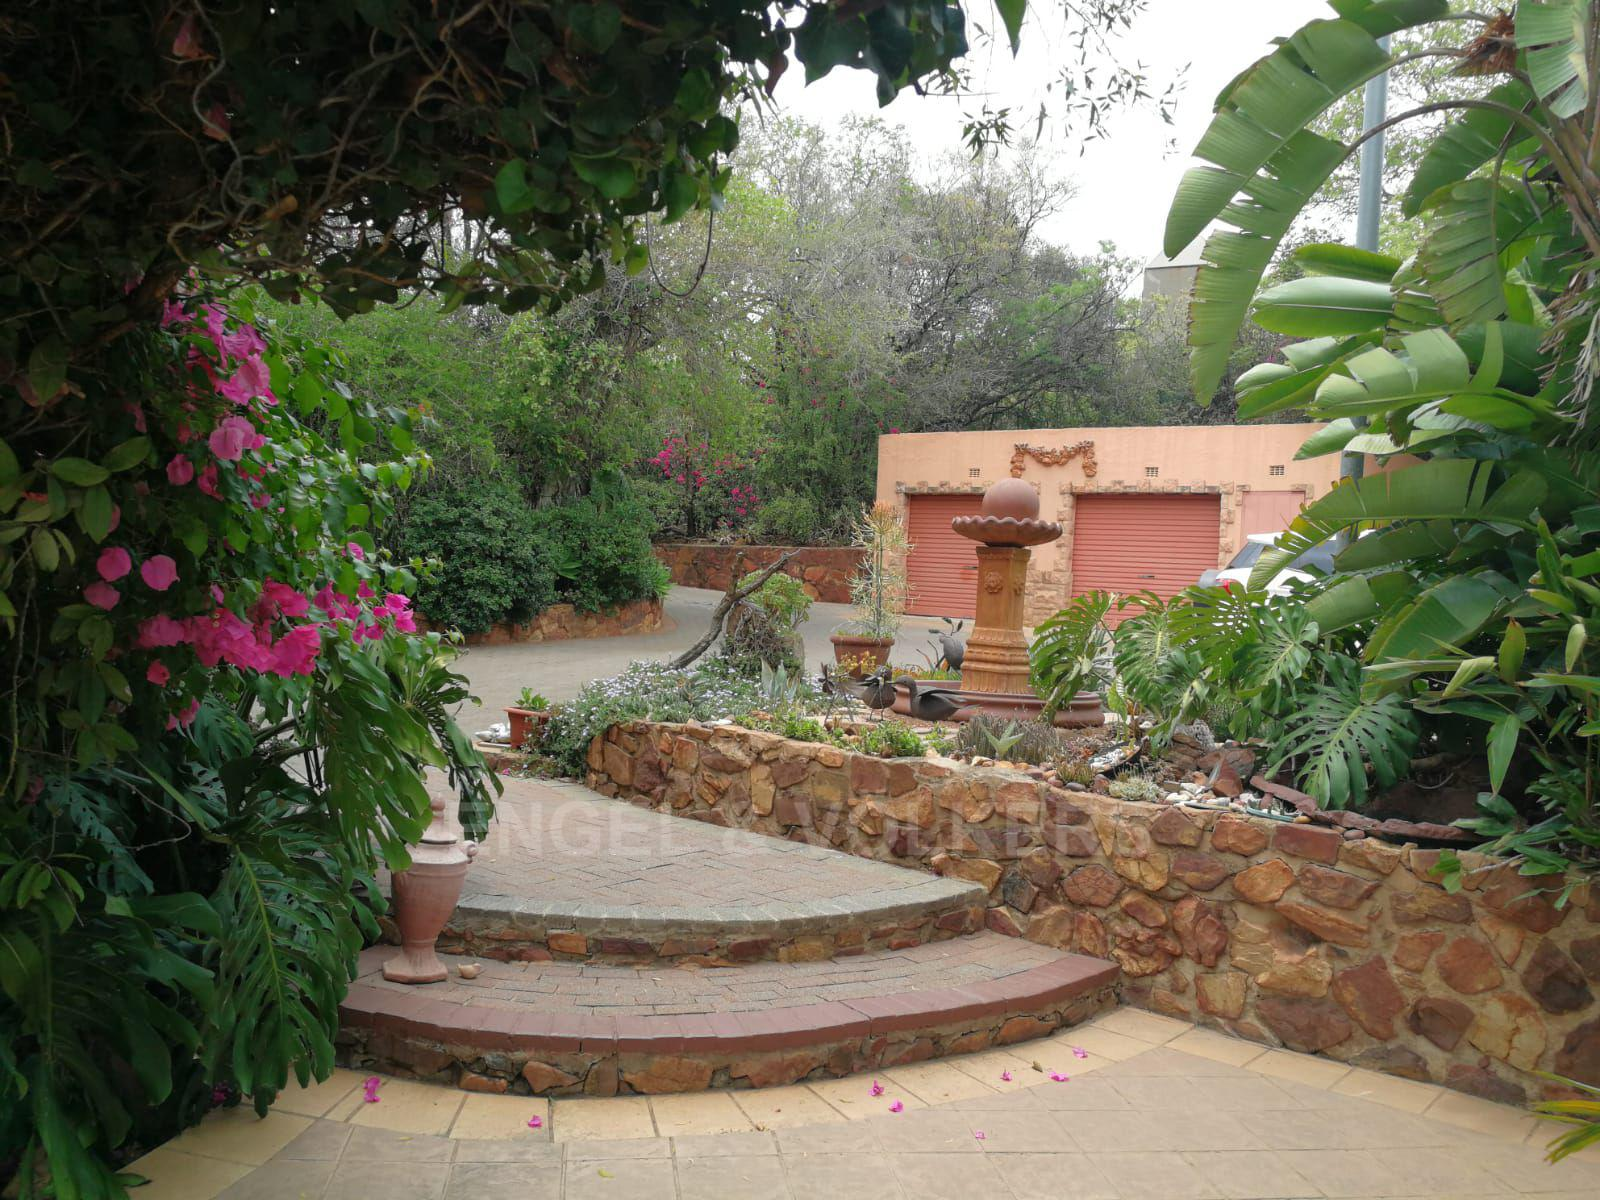 Land in Hartbeespoort Dam Area - Established gardens, garages